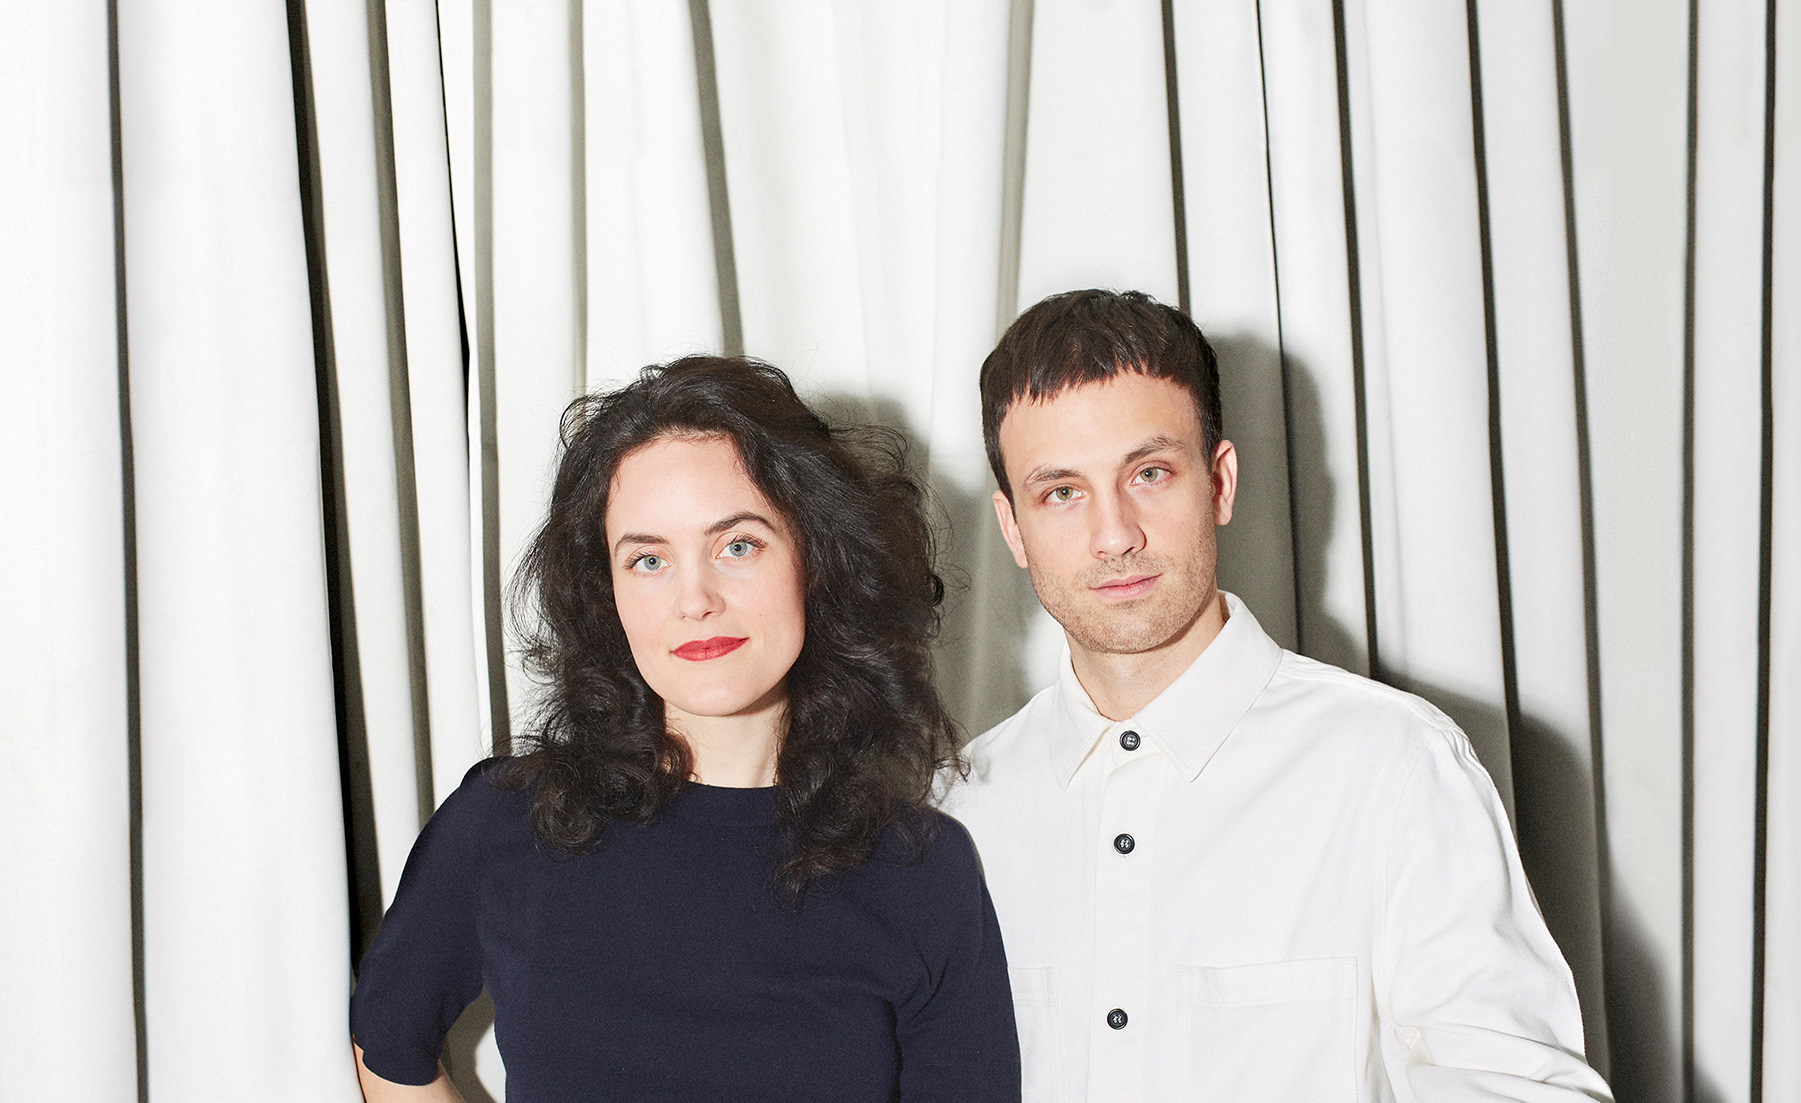 Anna Drewes and Dario Iannone